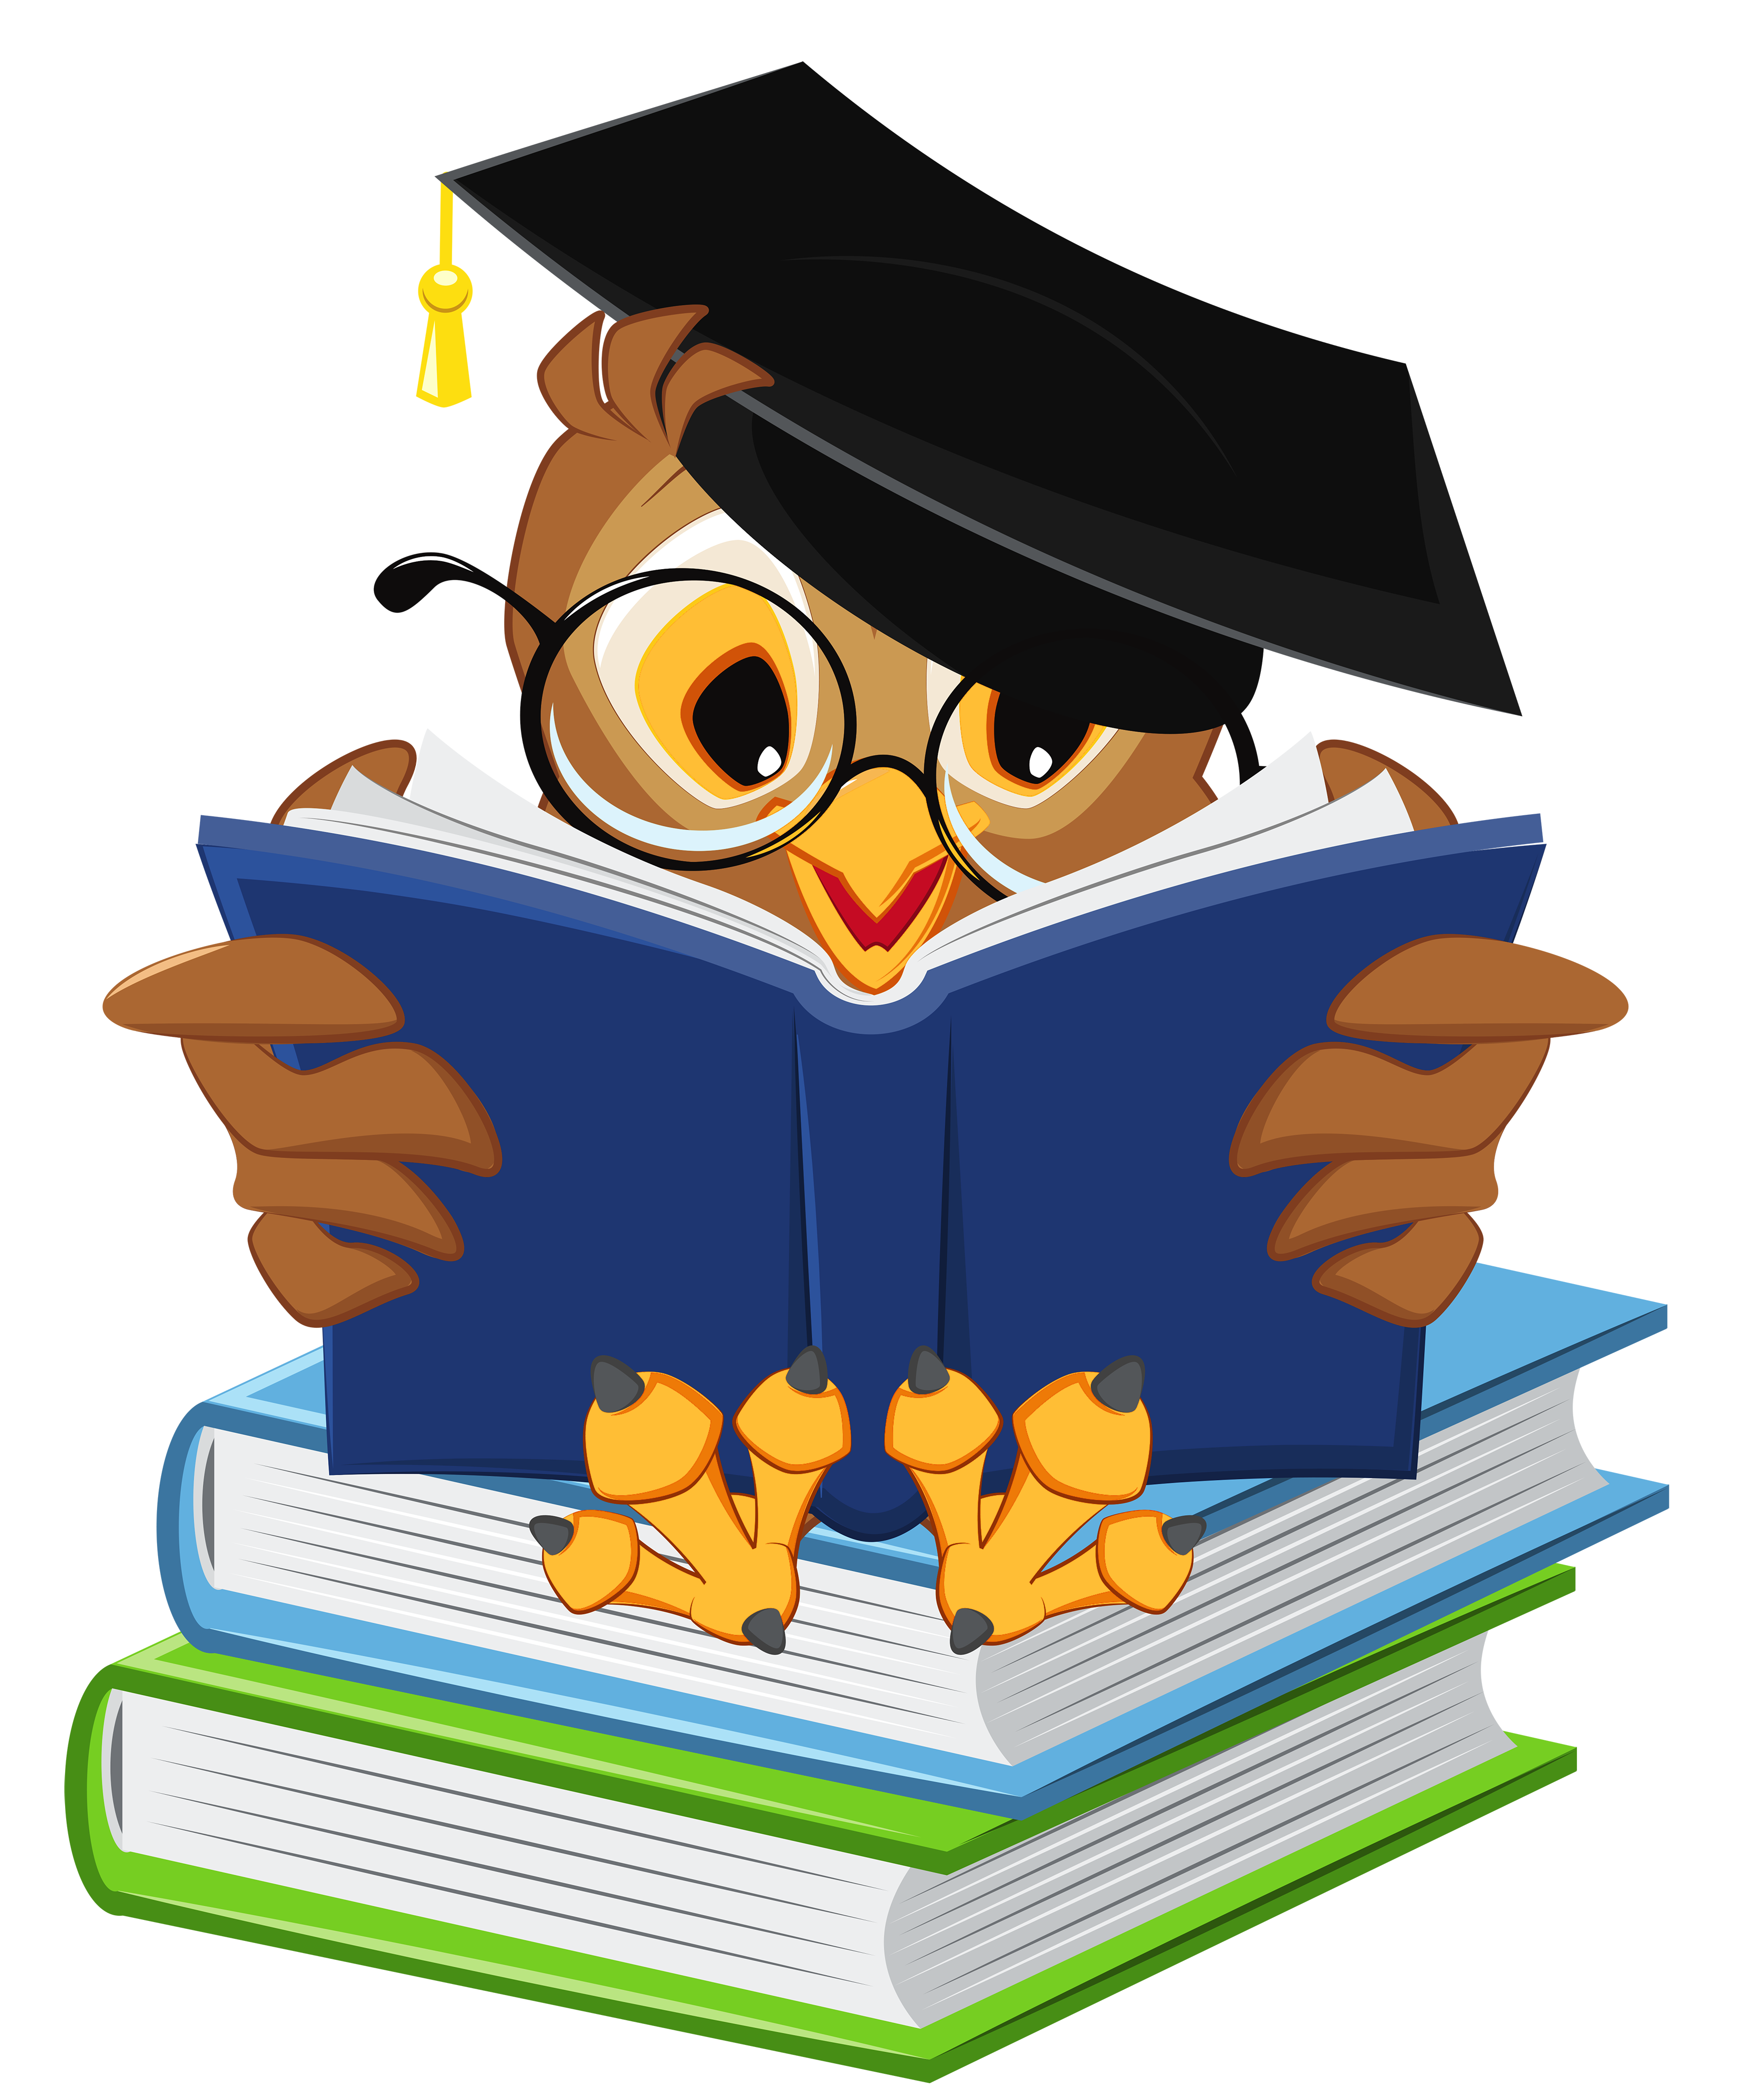 Free Book School Cliparts, Download Free Clip Art, Free Clip.